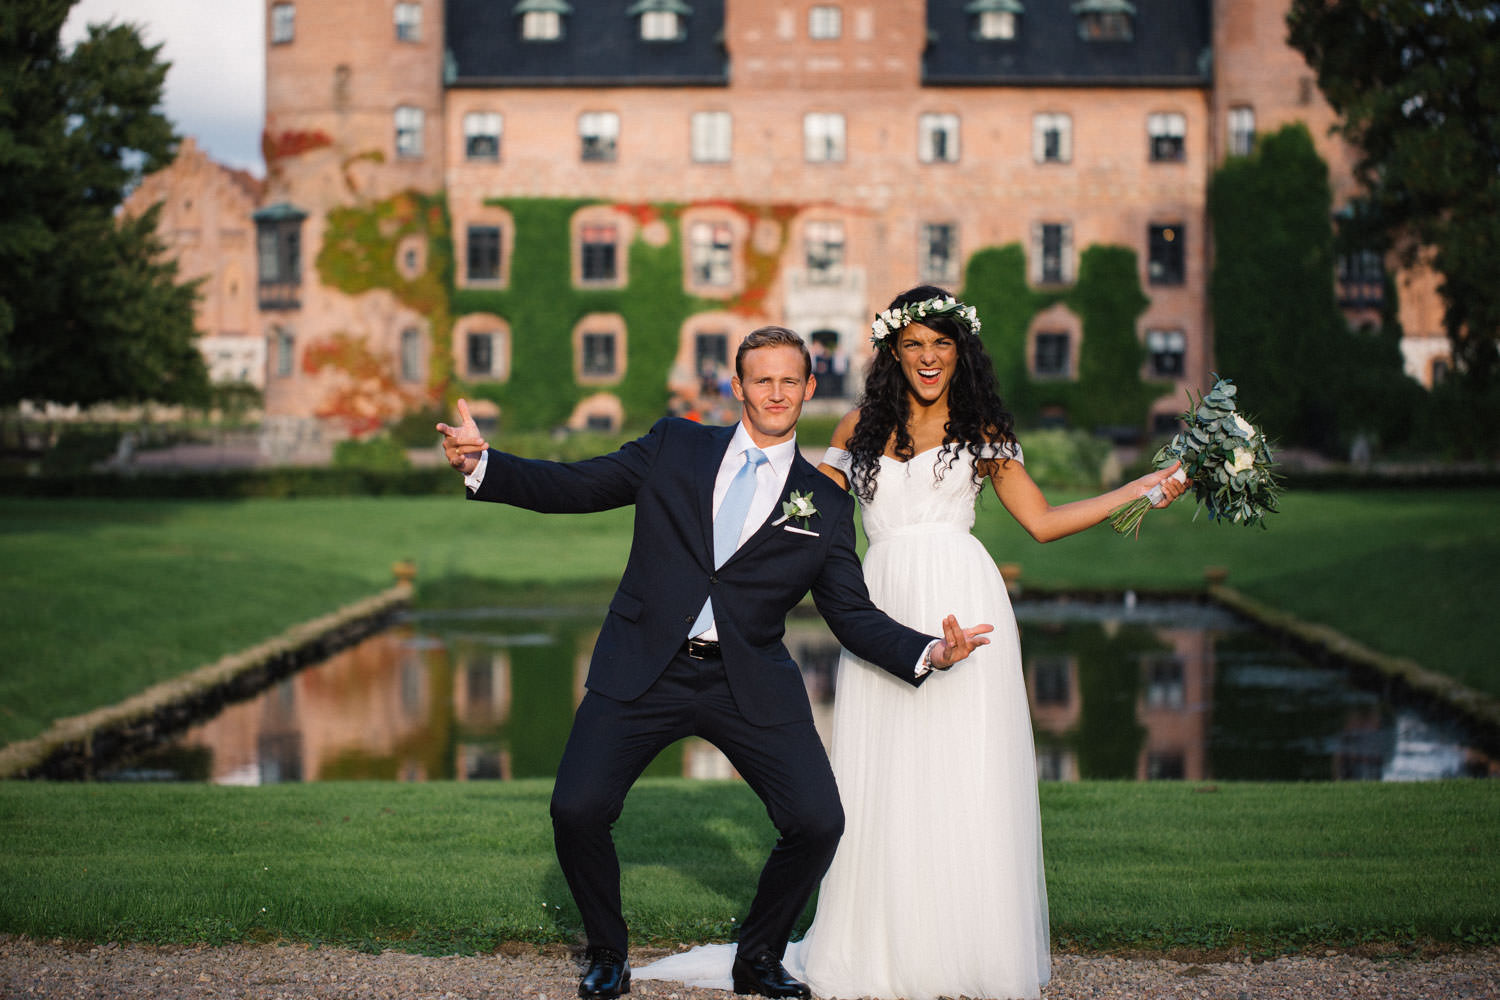 Colour image from a destination wedding in Sweden. I usuall shoot documentary, capturing authentic emotions. Also elopements. Tove Lundquist - wedding photographer Sweden.